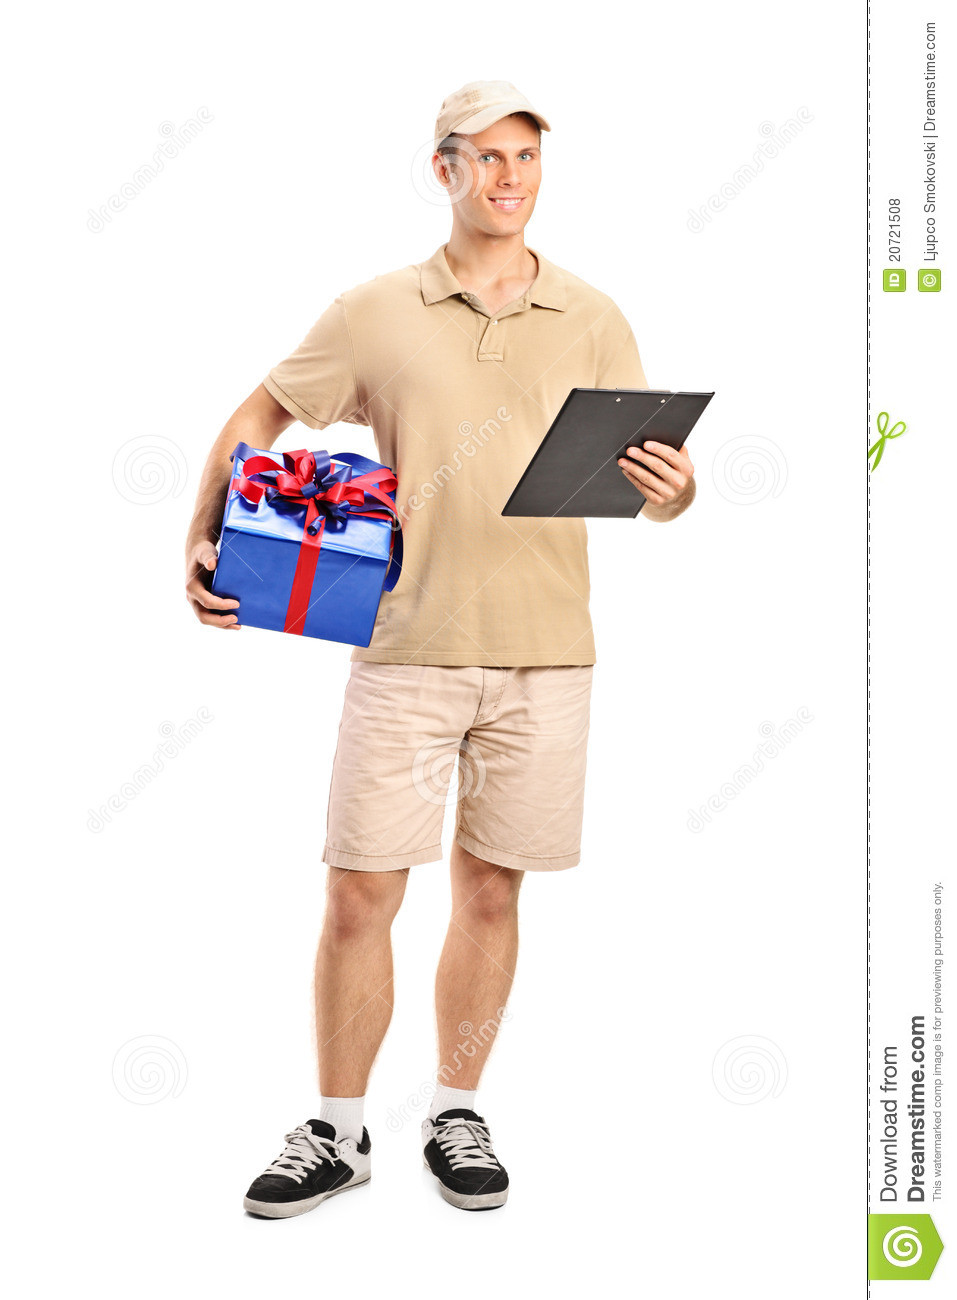 Delivery Person Delivering A Gift Royalty Free Stock Photos ...